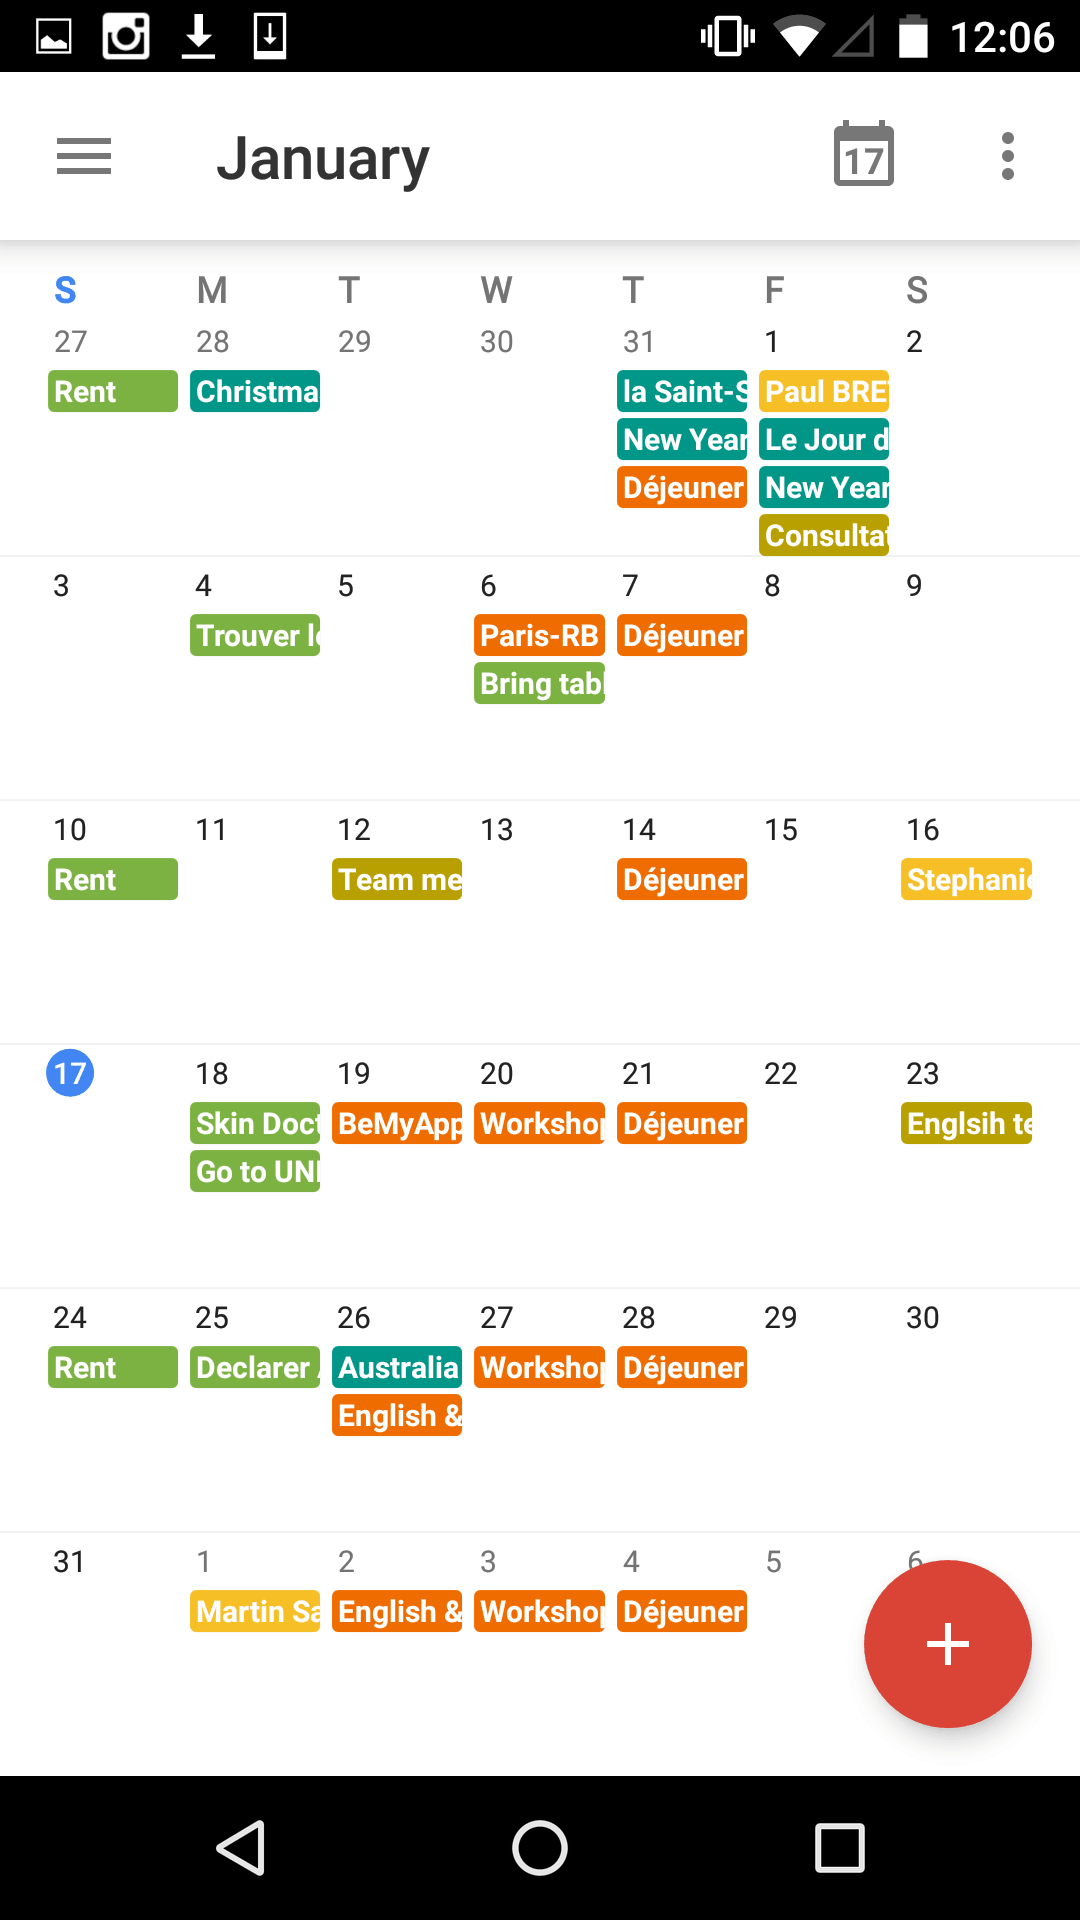 Weekly Calendar Ui : Monthly view on google calendar ui inspiration